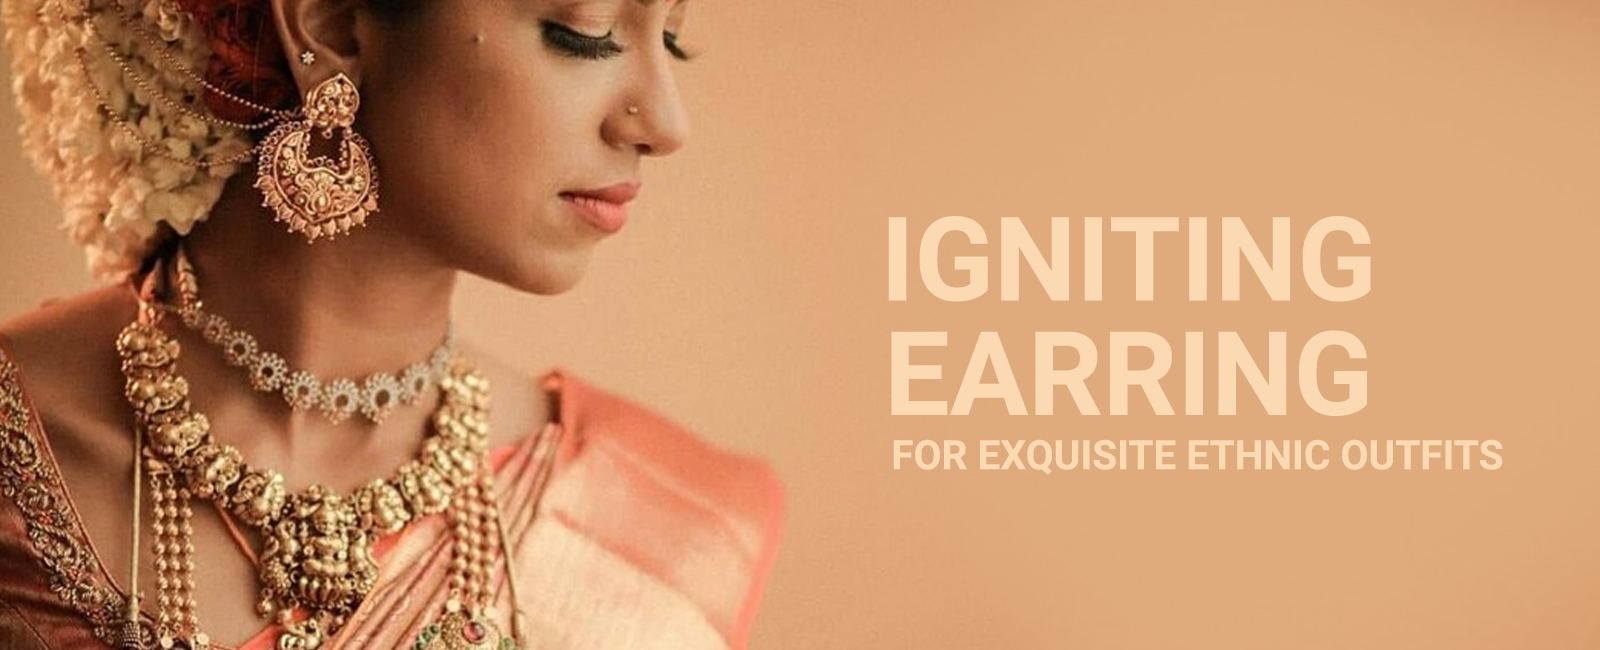 Igniting Earring For Exquisite Ethnic Outfits